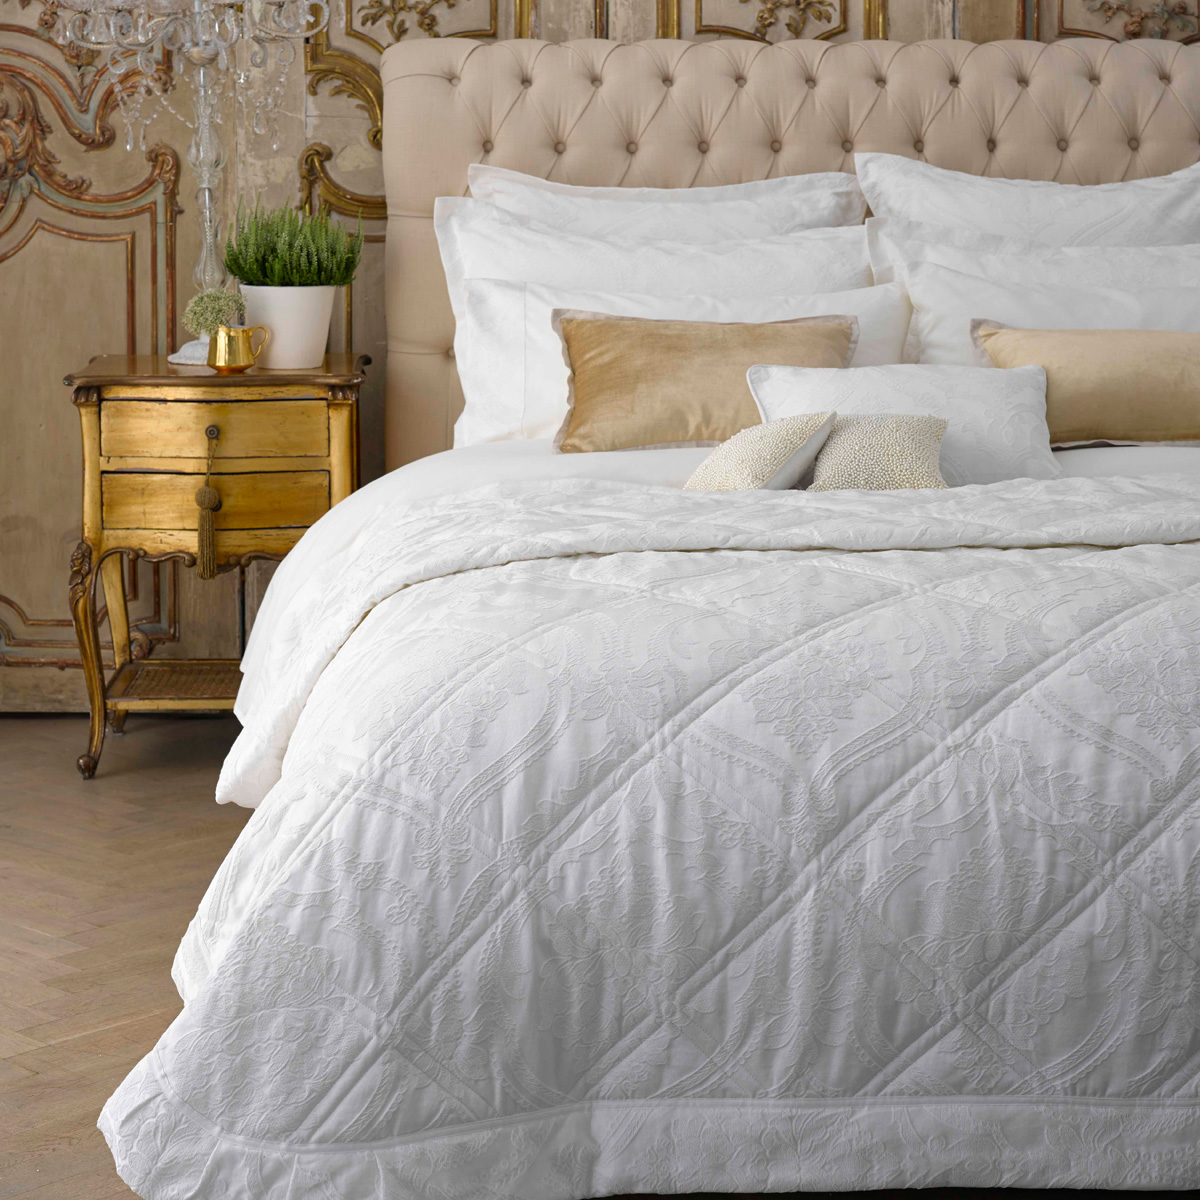 Christy Rochester Bed Linen Warm White Christy